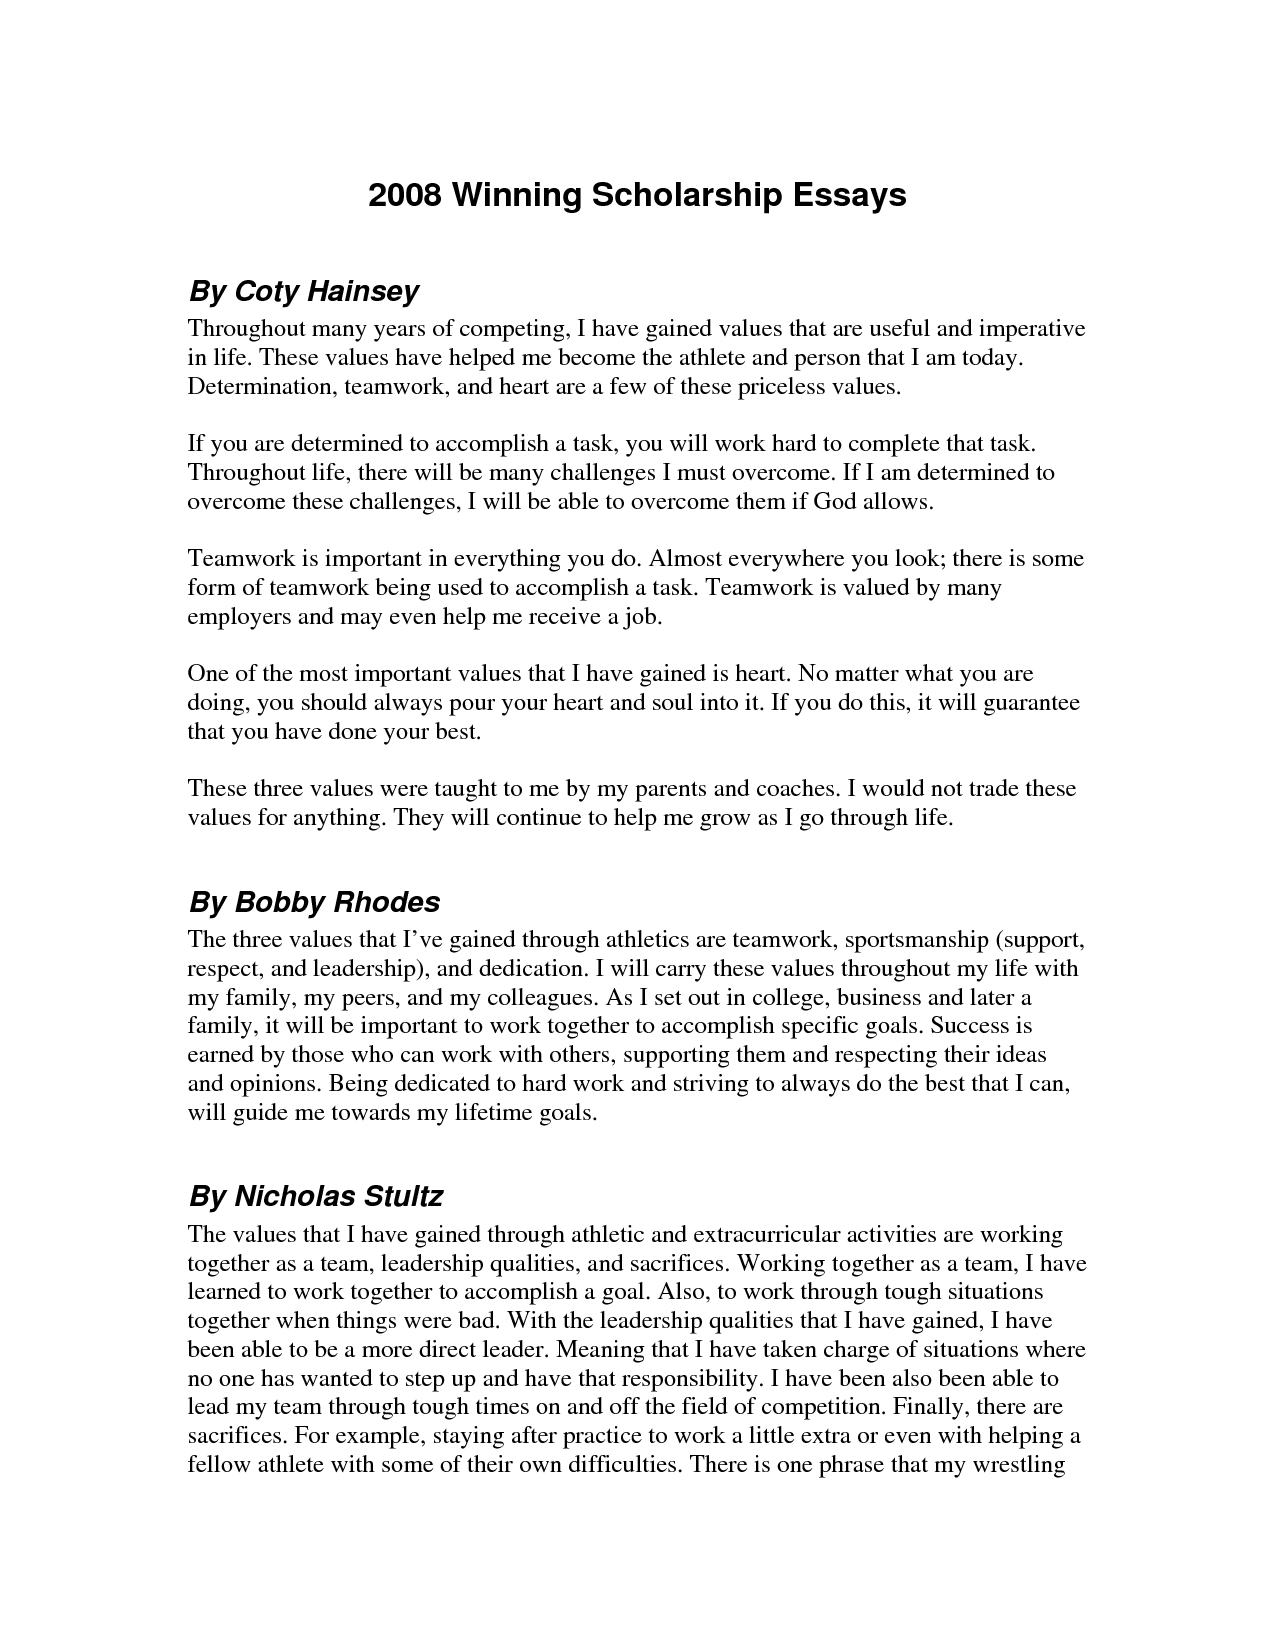 005 Winning Scholarship Essays Essay Example Awesome Collection Of Best Guidelines Unique What Do You Exceptional Examples Pdf Gilman How To Write Full